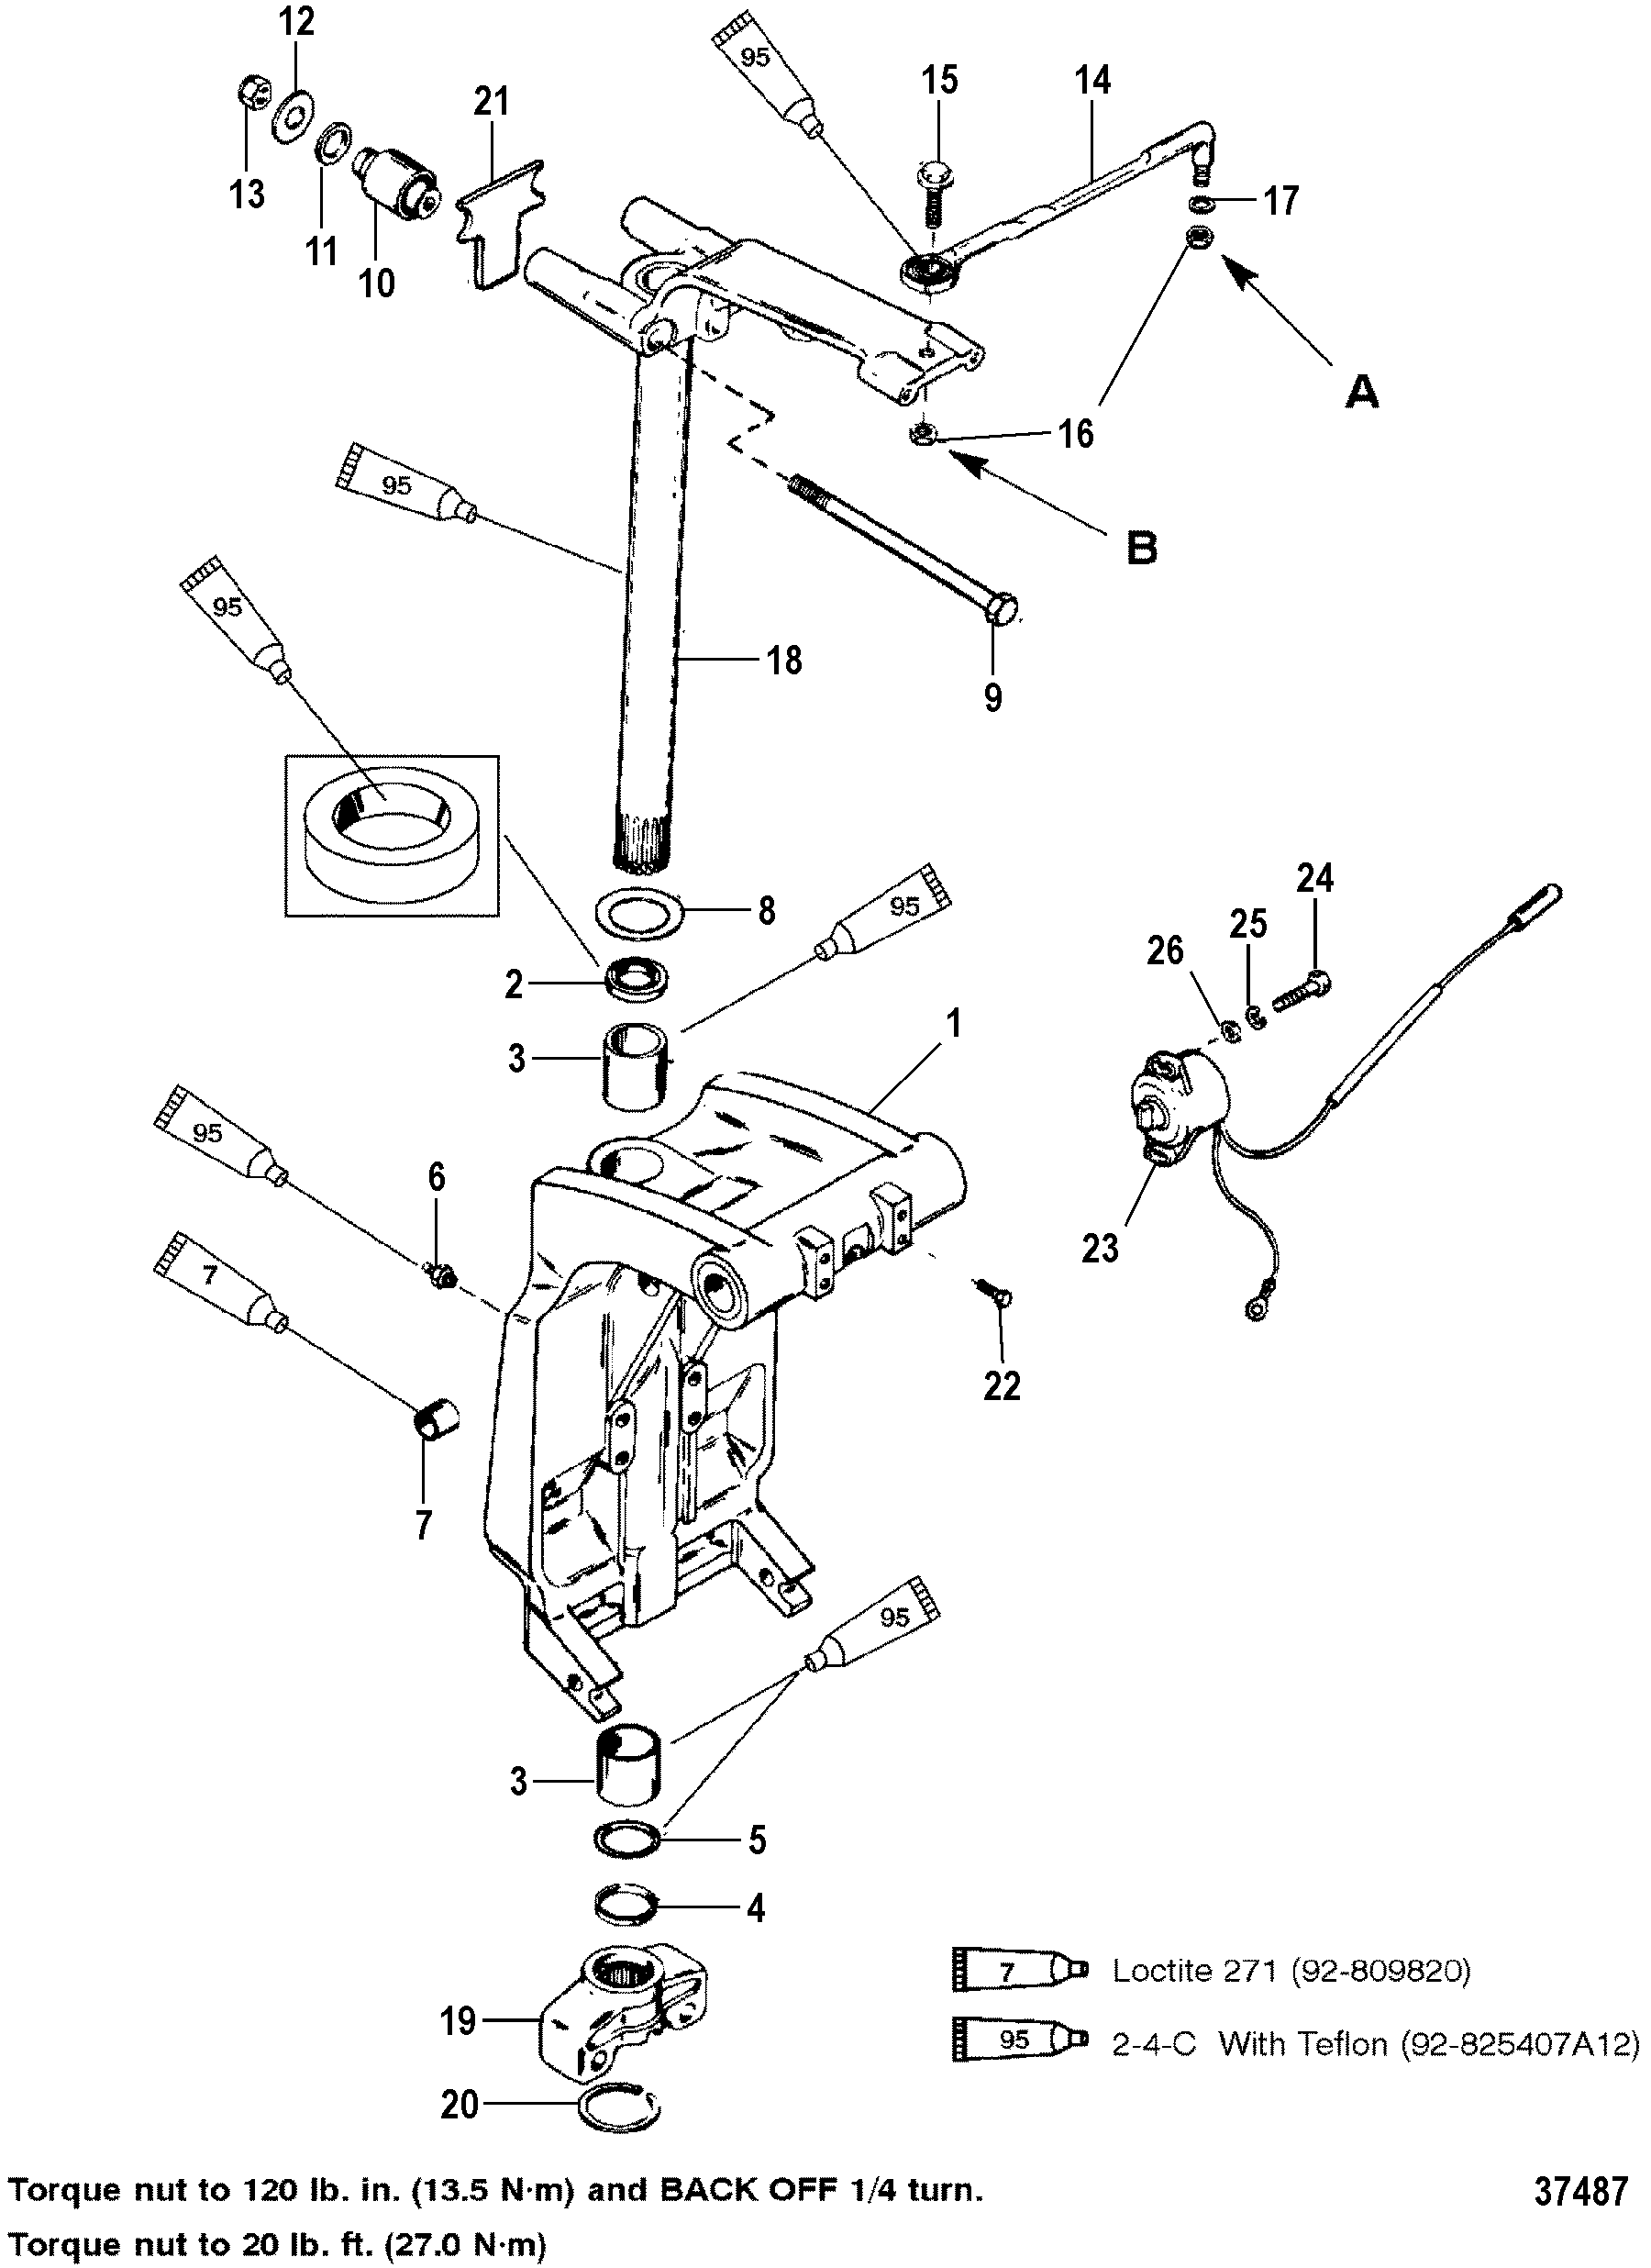 Lane Recliner Handle Partslazy Boy Parts Of How To Patent Us6612141 Interconnected Lock With Remote Locking Mechanism Swivel Bracket And Steering Arm For Mariner Mercury 150